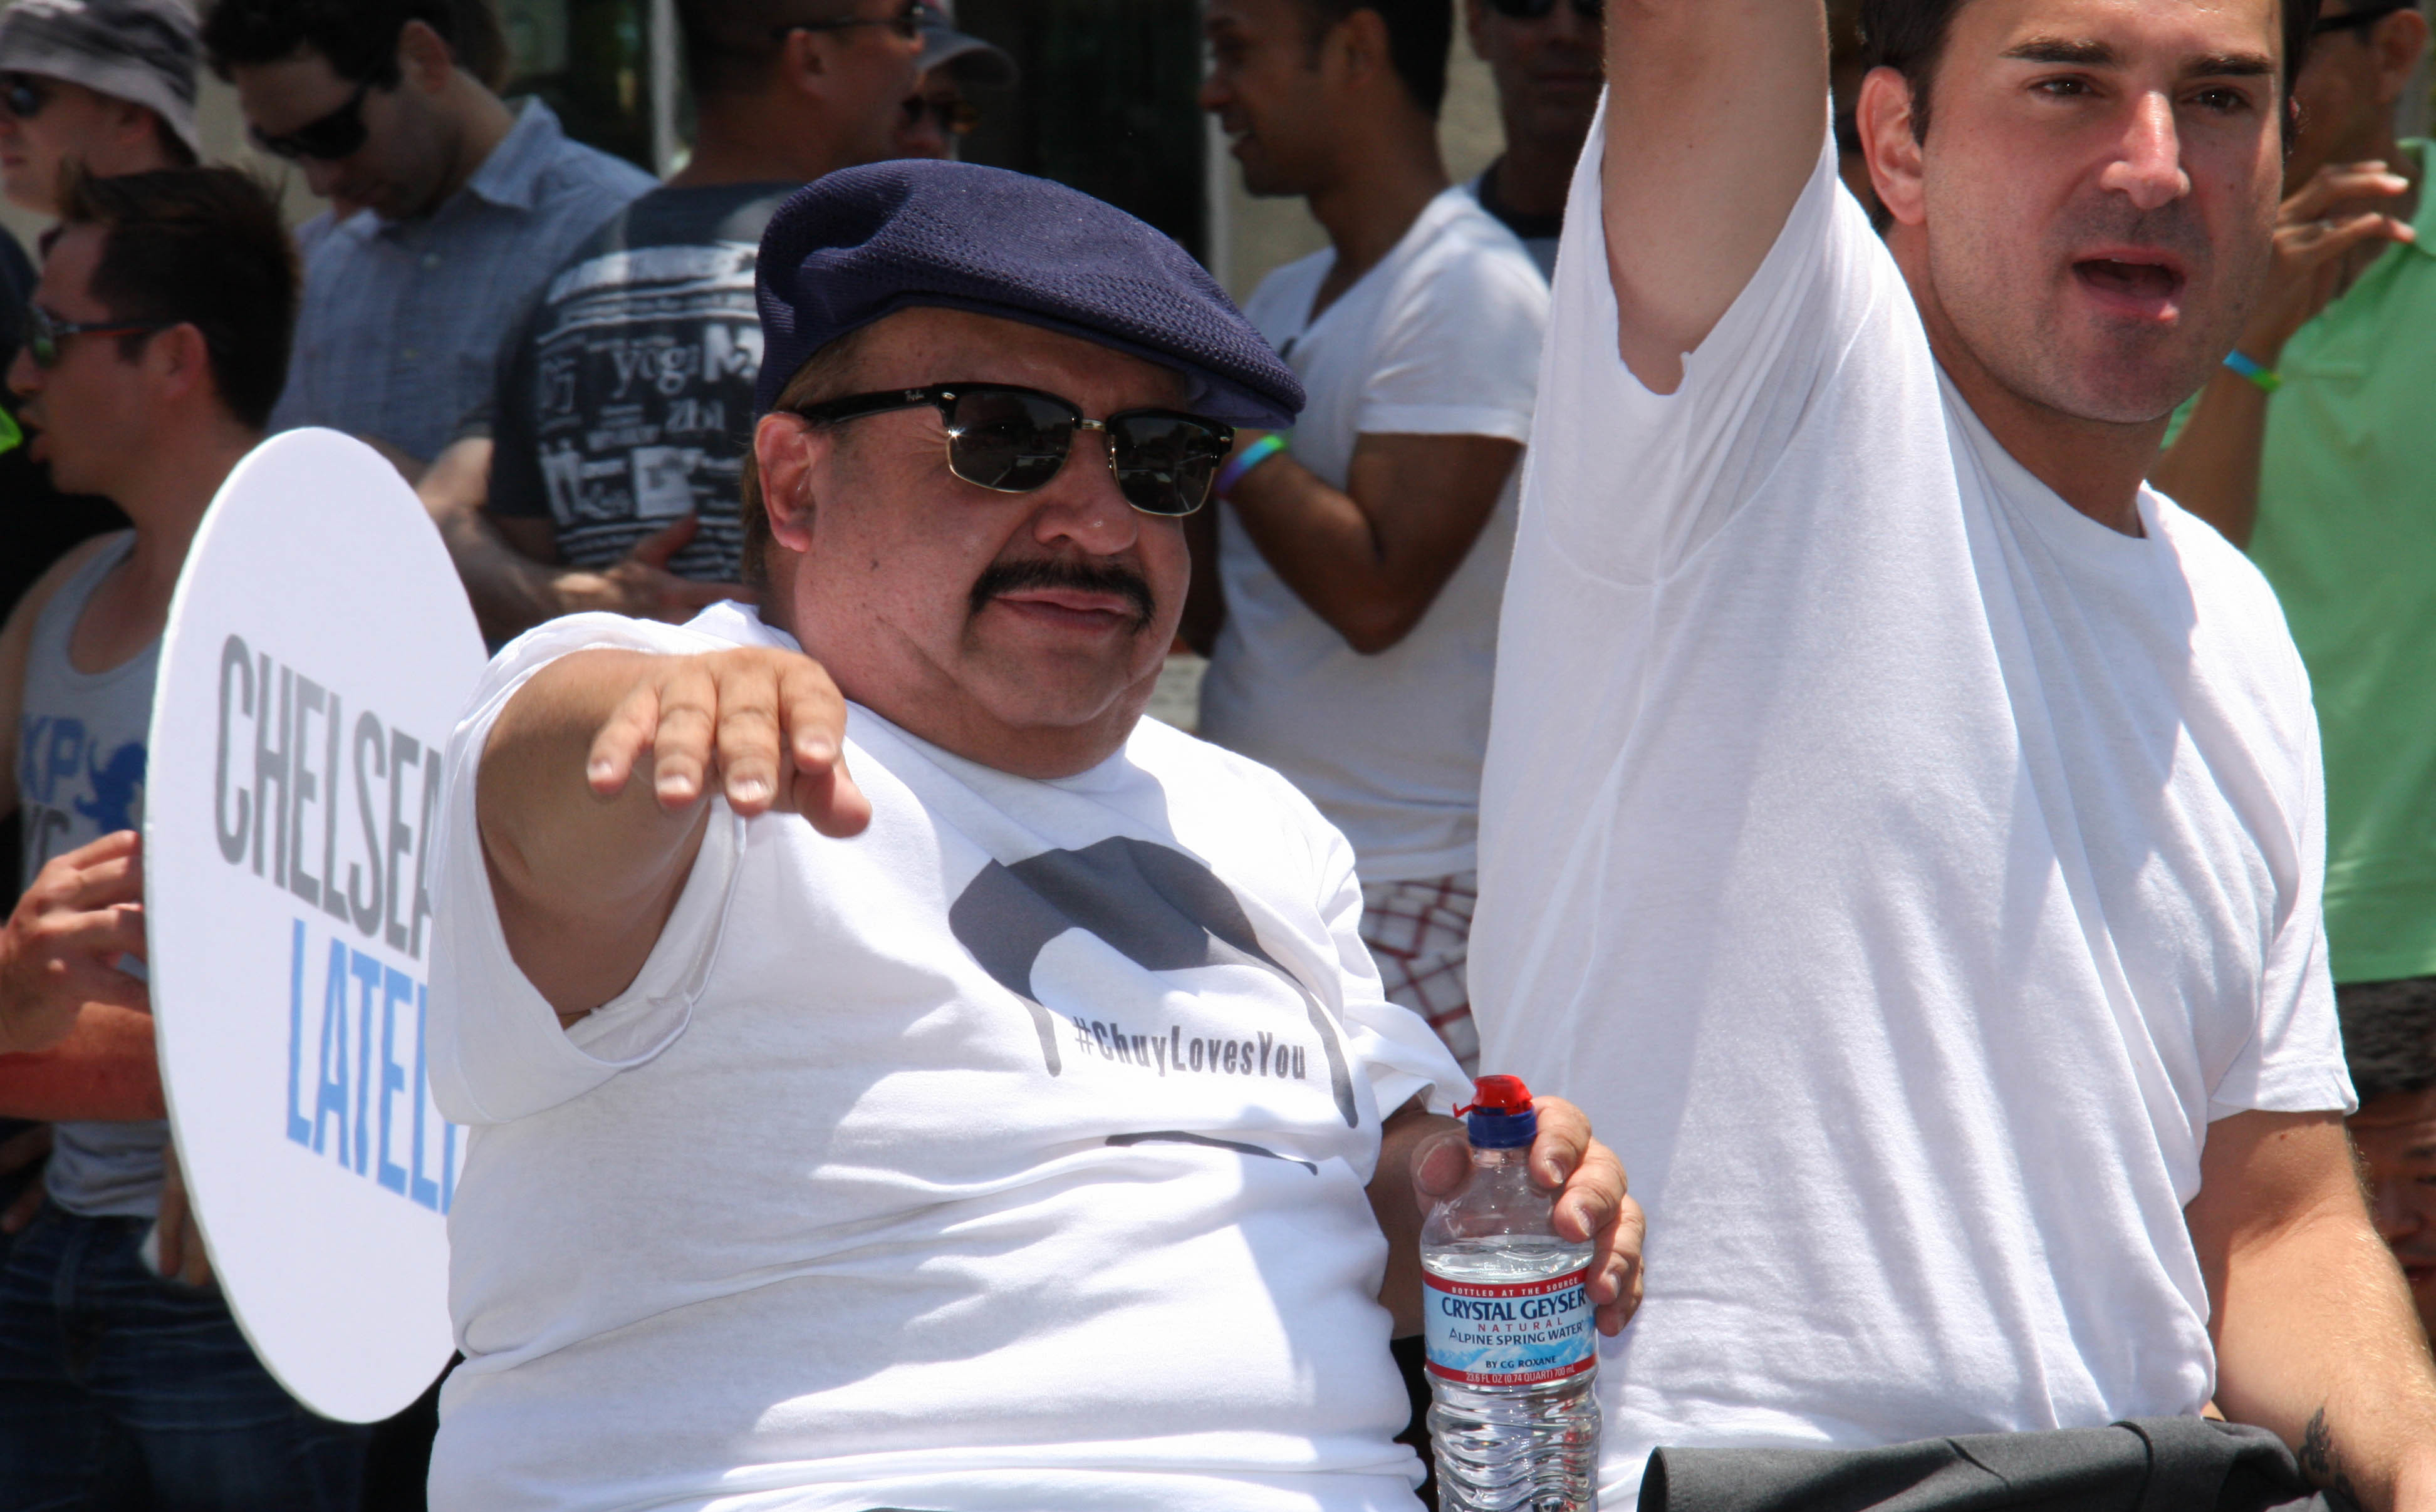 The 61-year old son of father (?) and mother(?) Chuy Bravo in 2021 photo. Chuy Bravo earned a  million dollar salary - leaving the net worth at 1.5 million in 2021